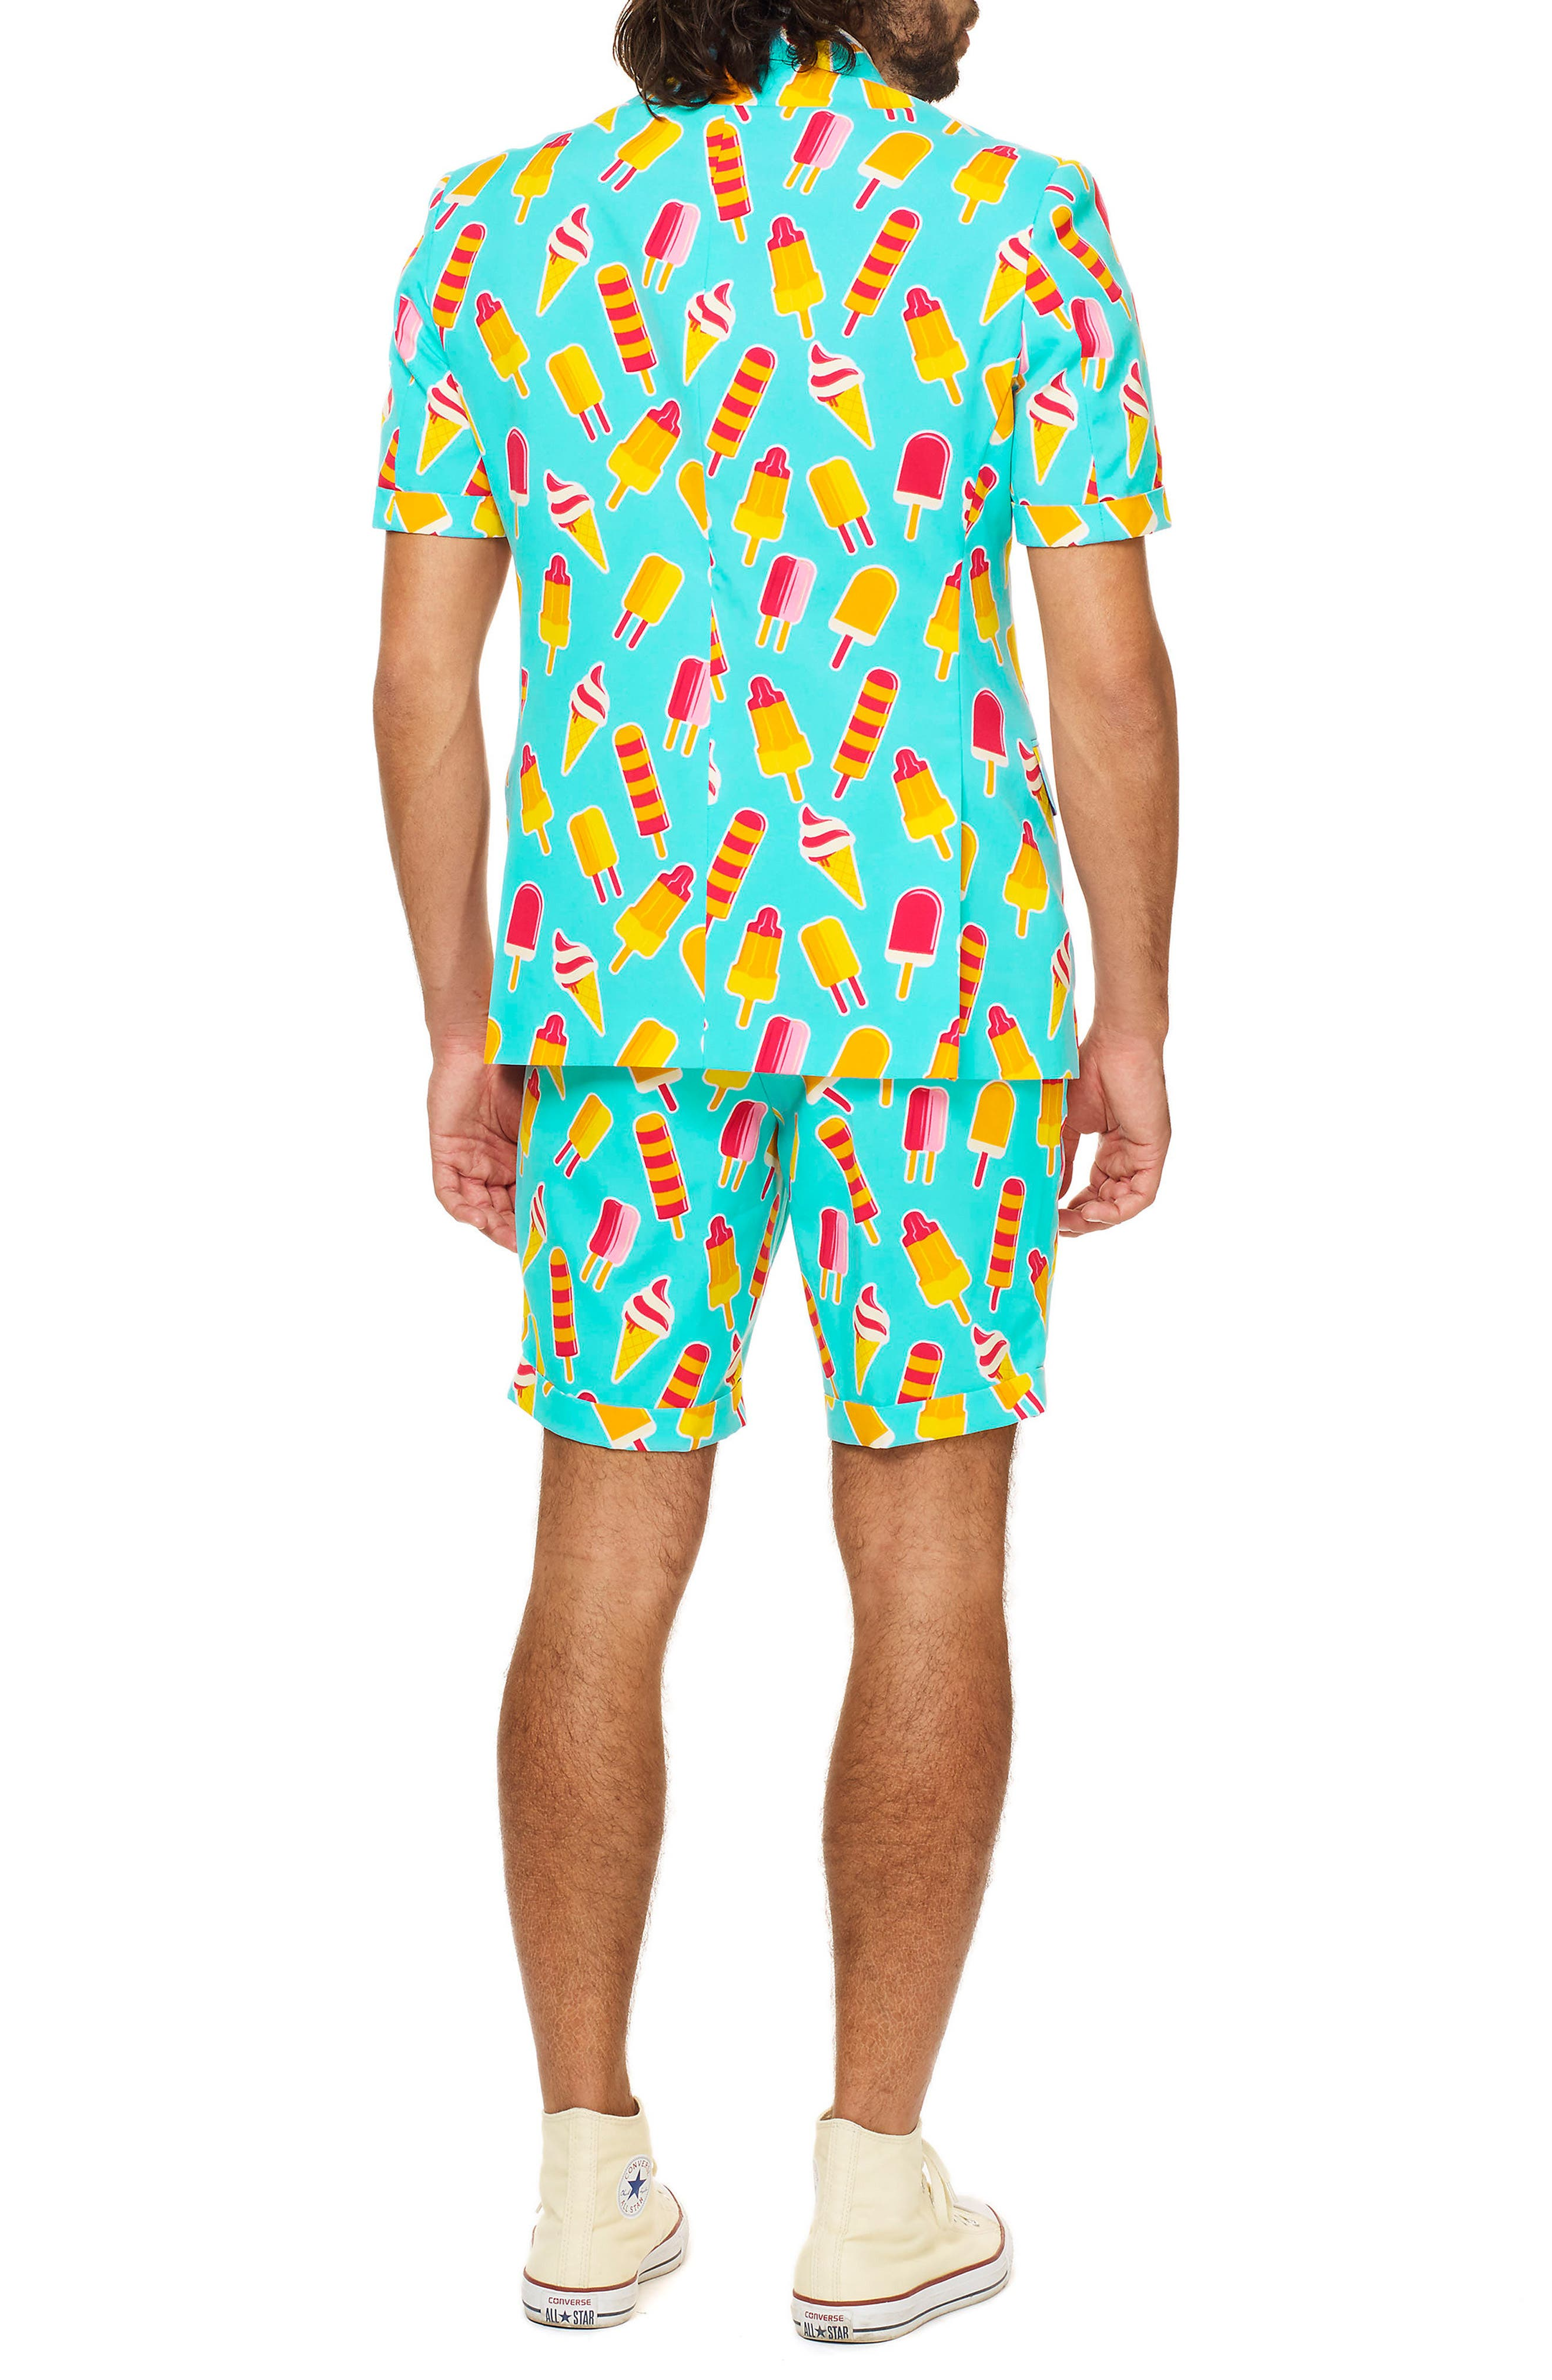 Alternate Image 2  - OppoSuits Summer Cool Cones Trim Fit Two-Piece Short Suit with Tie